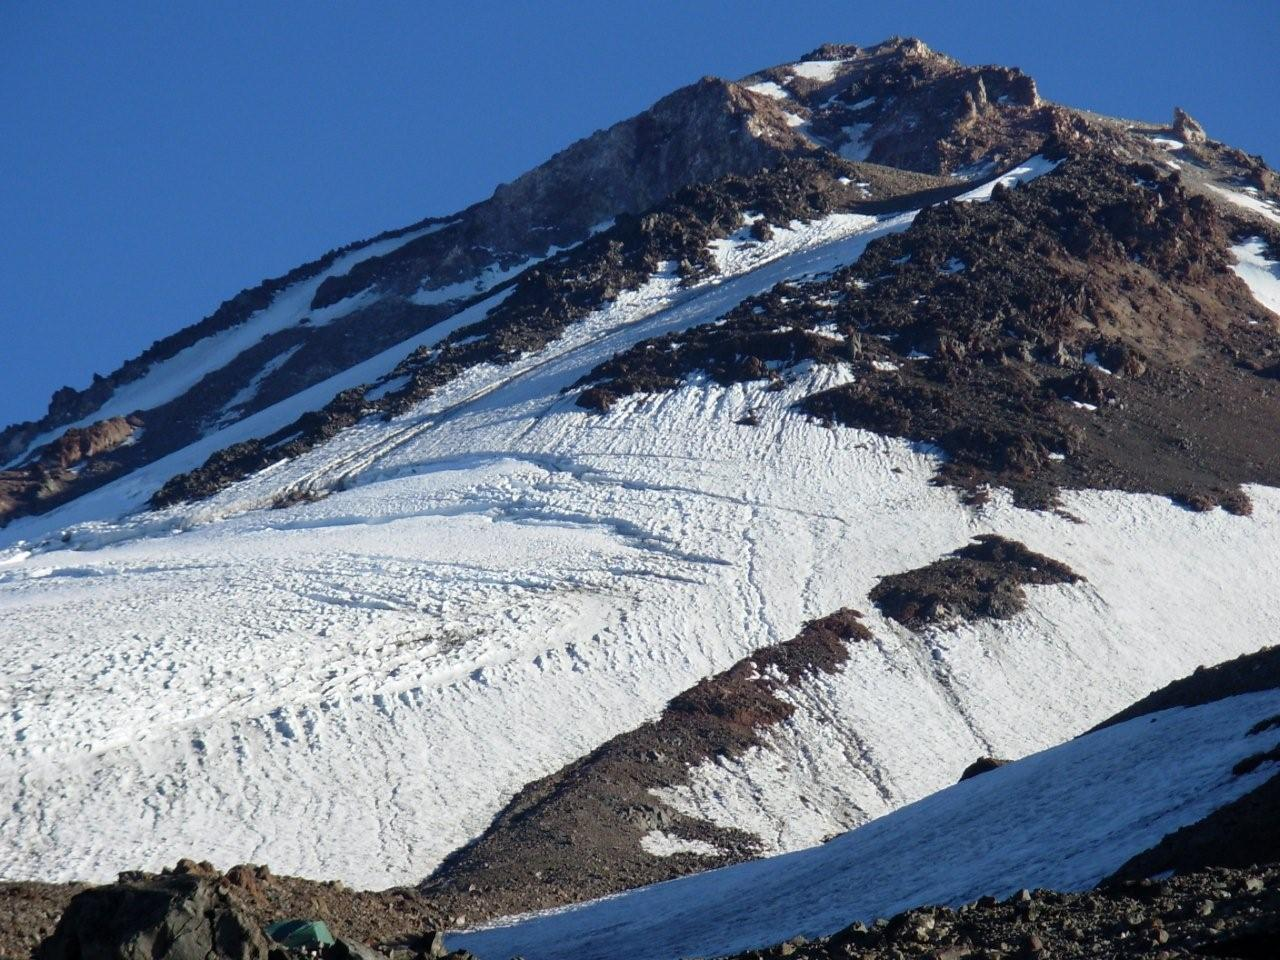 mount shasta dating site Mount shasta located in northern california is a destination for mystics, gurus, sages, and curious people from all over the world the mystery and unexplained stories surrounding this site are endless.